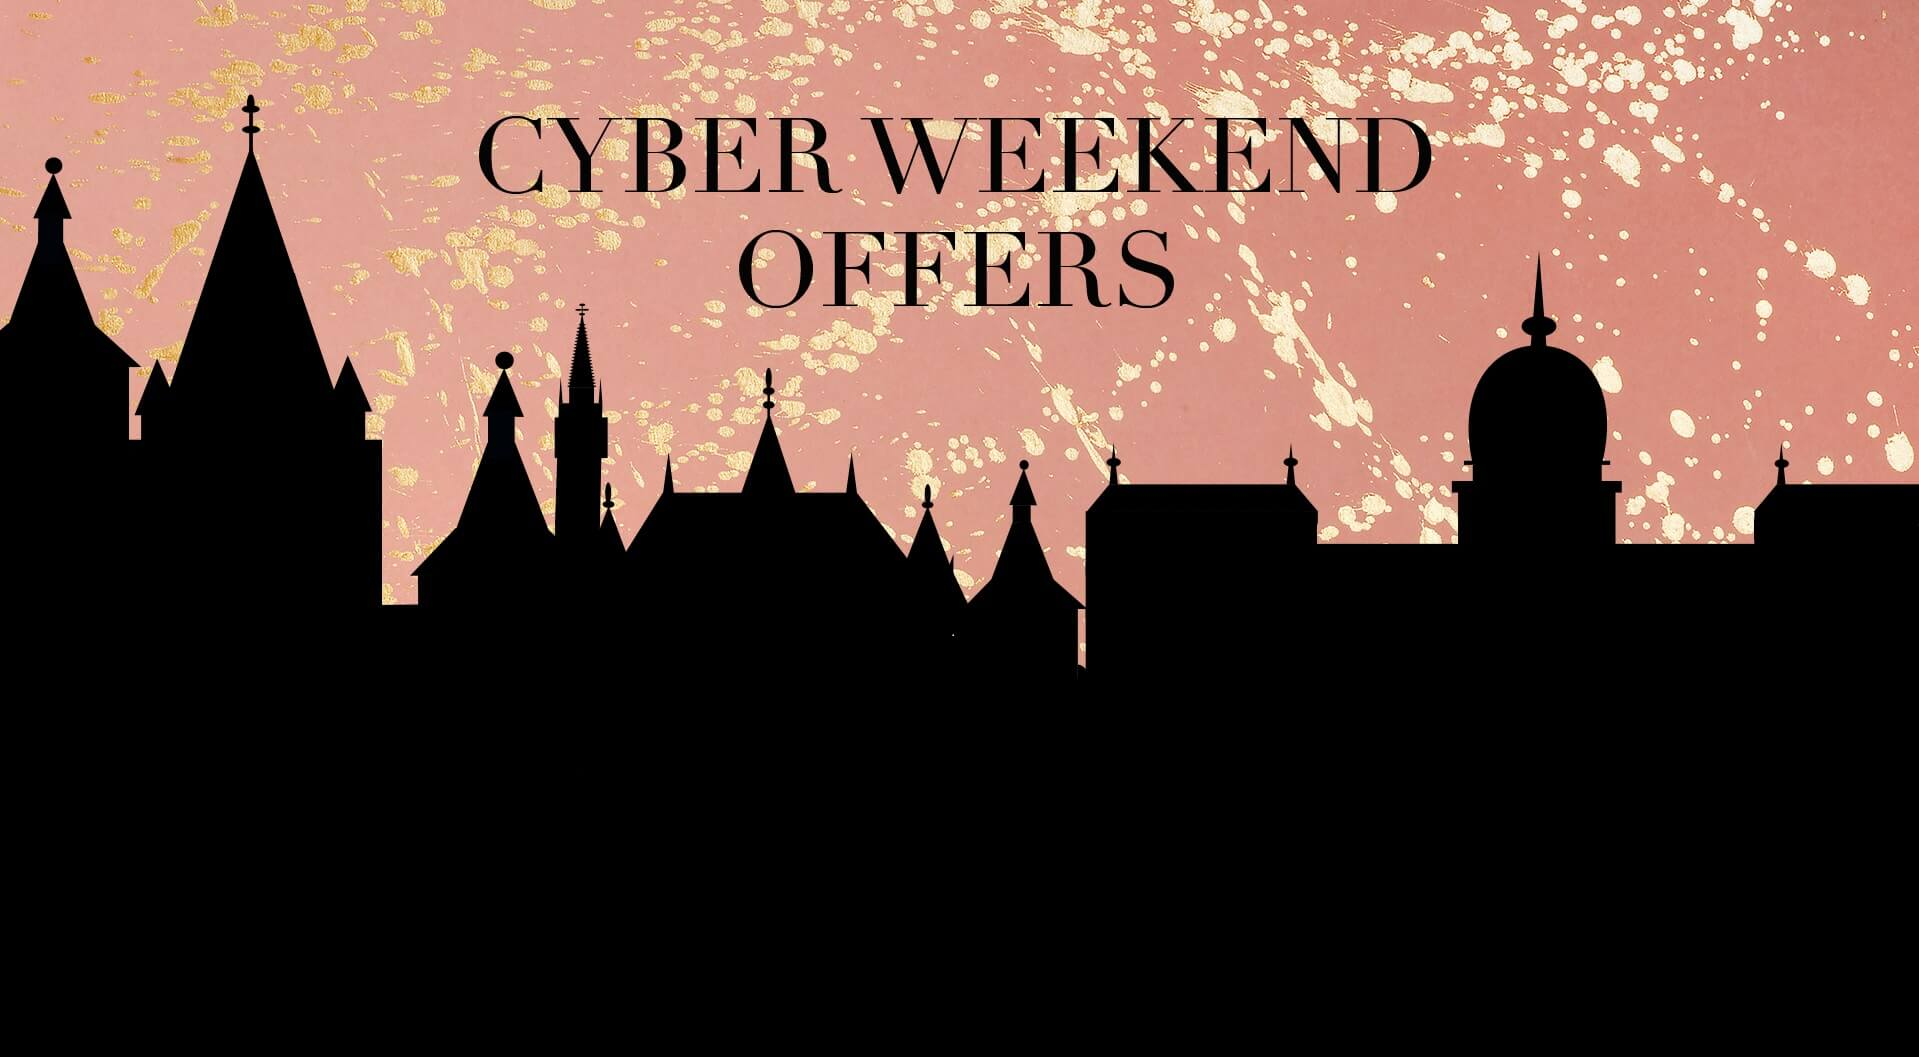 Cyber Weekend Offers